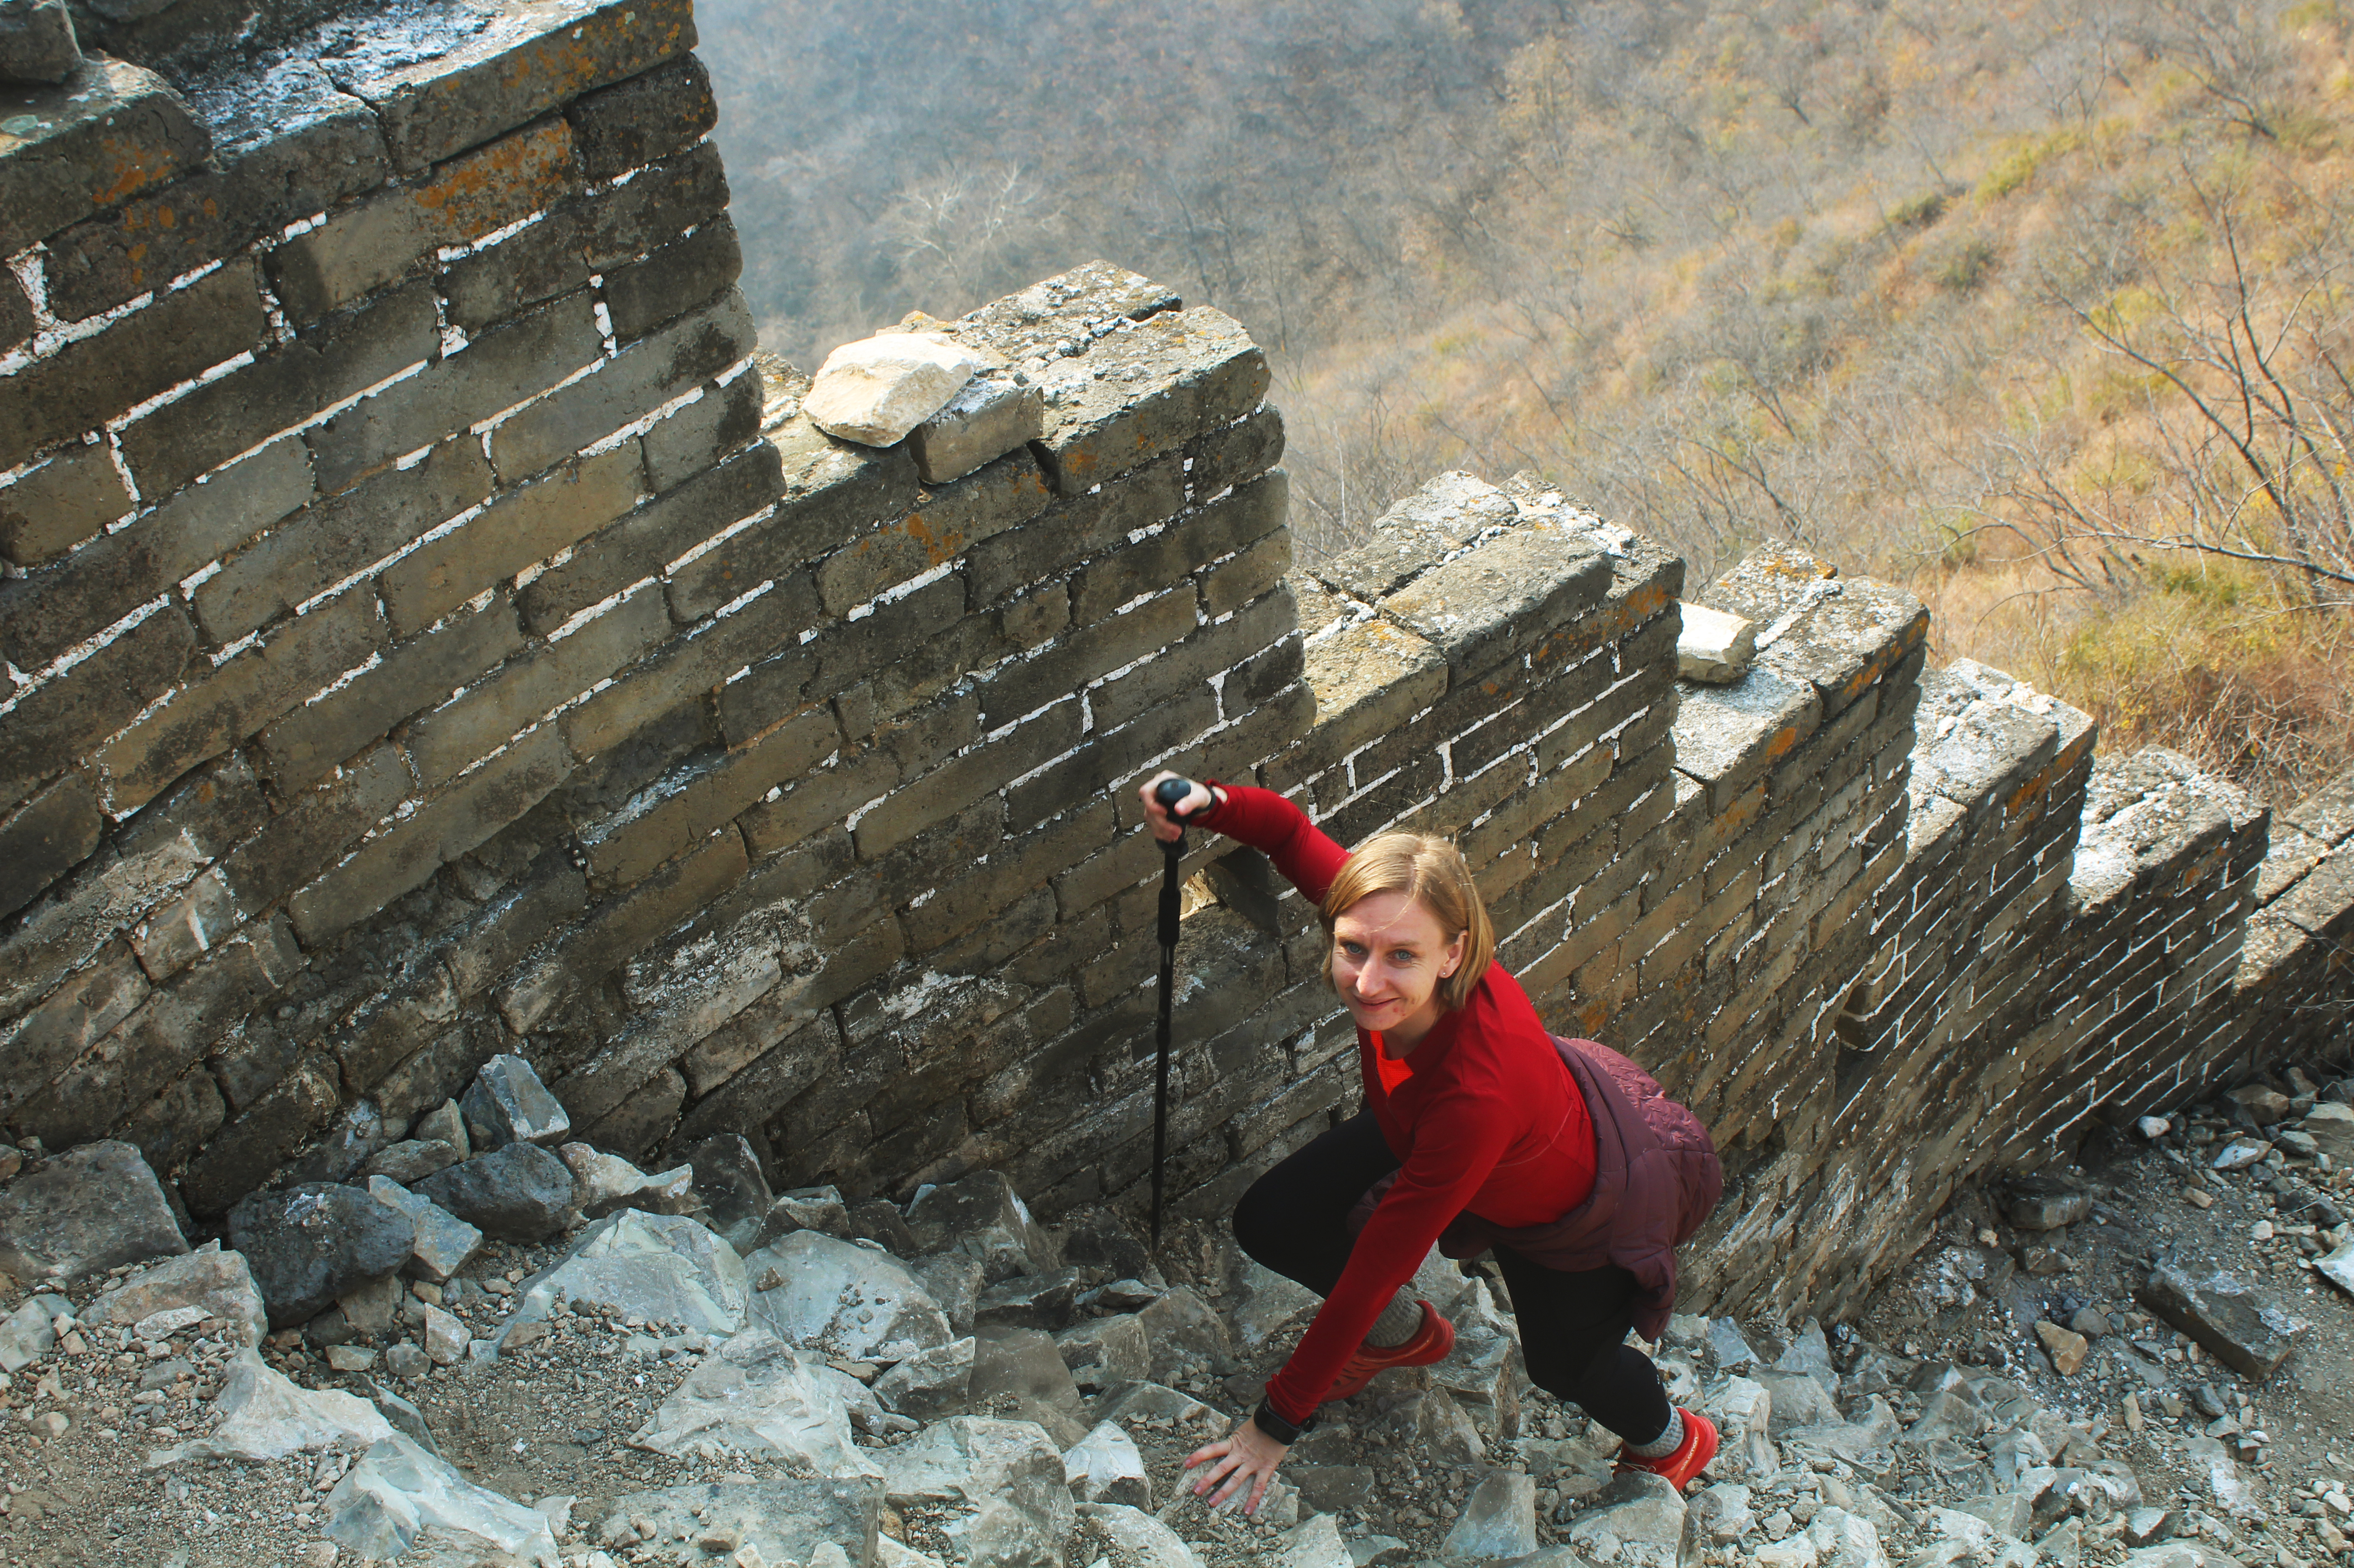 Chinese Knot Great Wall, 2018/11/03 photo #18